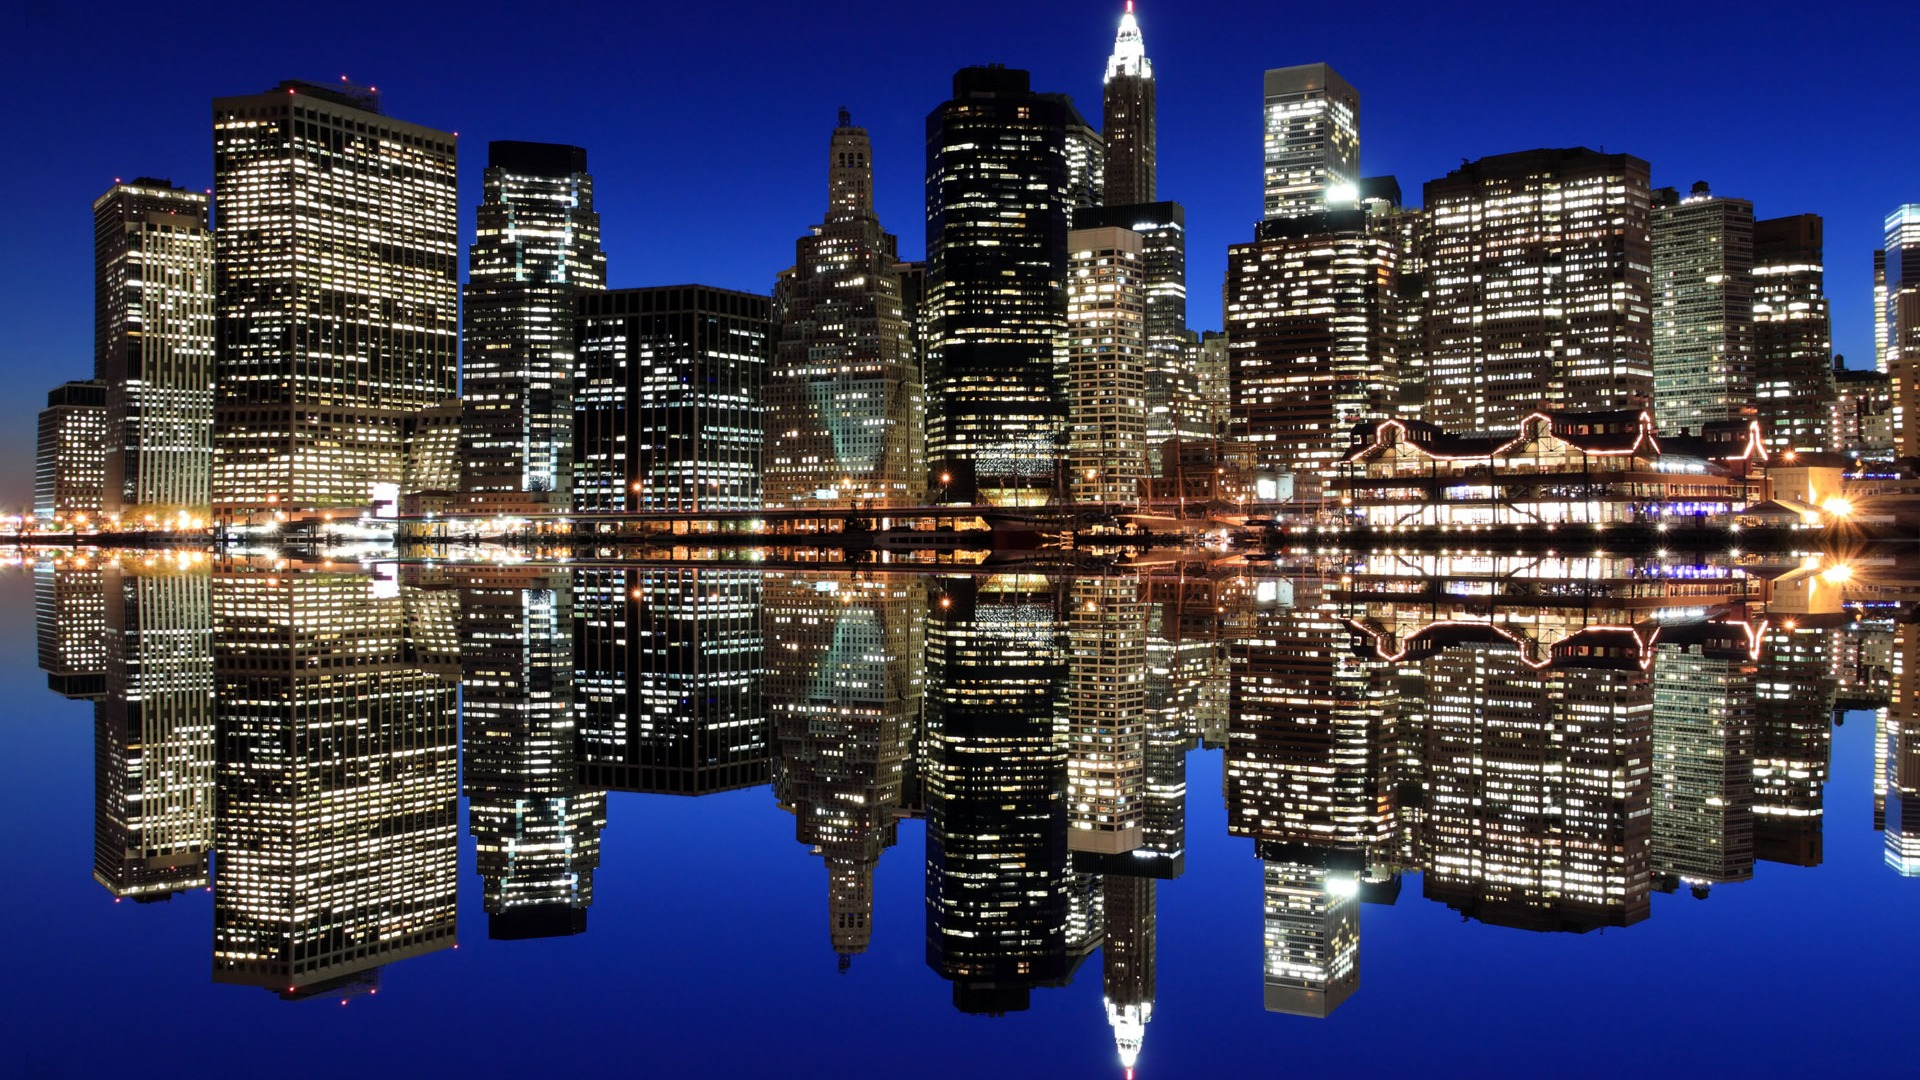 New york city wallpapers best wallpapers for Towns in new york